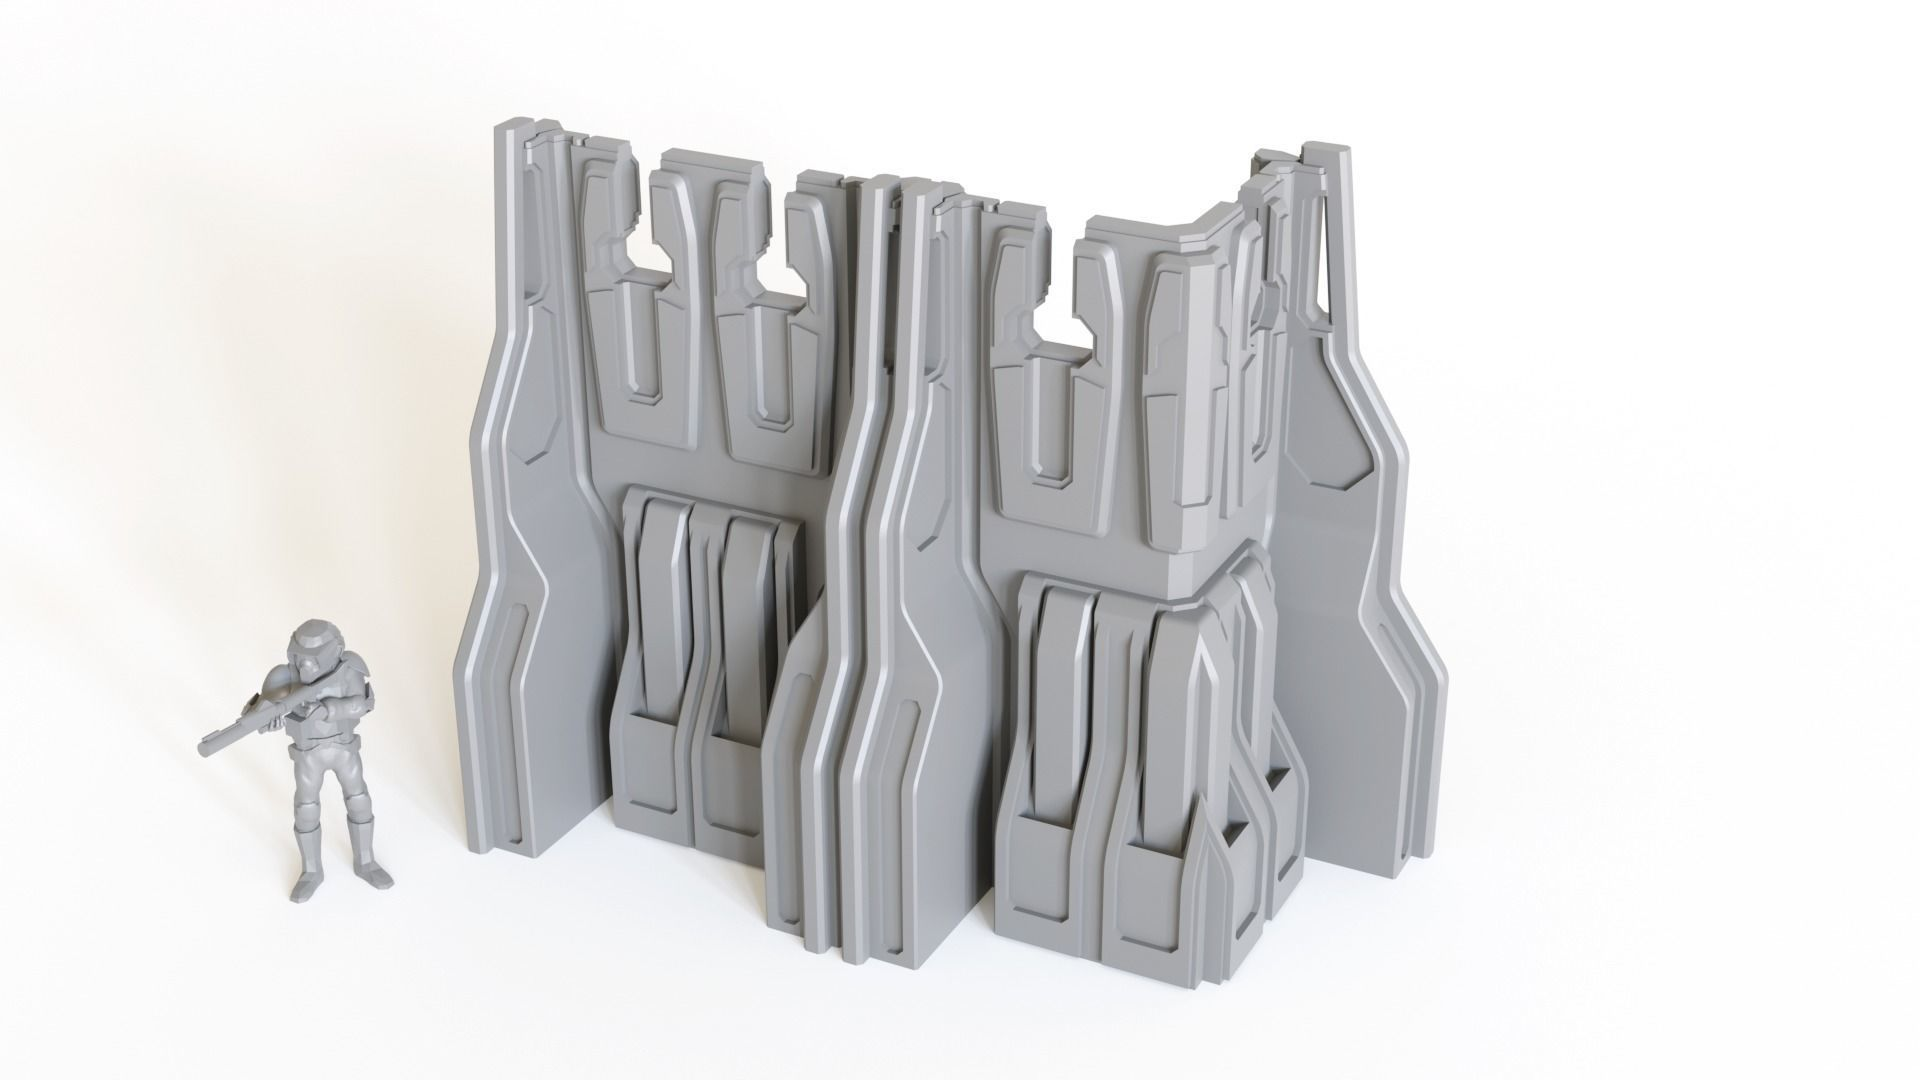 SciFi Ready-to-print Wall sections for tabletop gaming